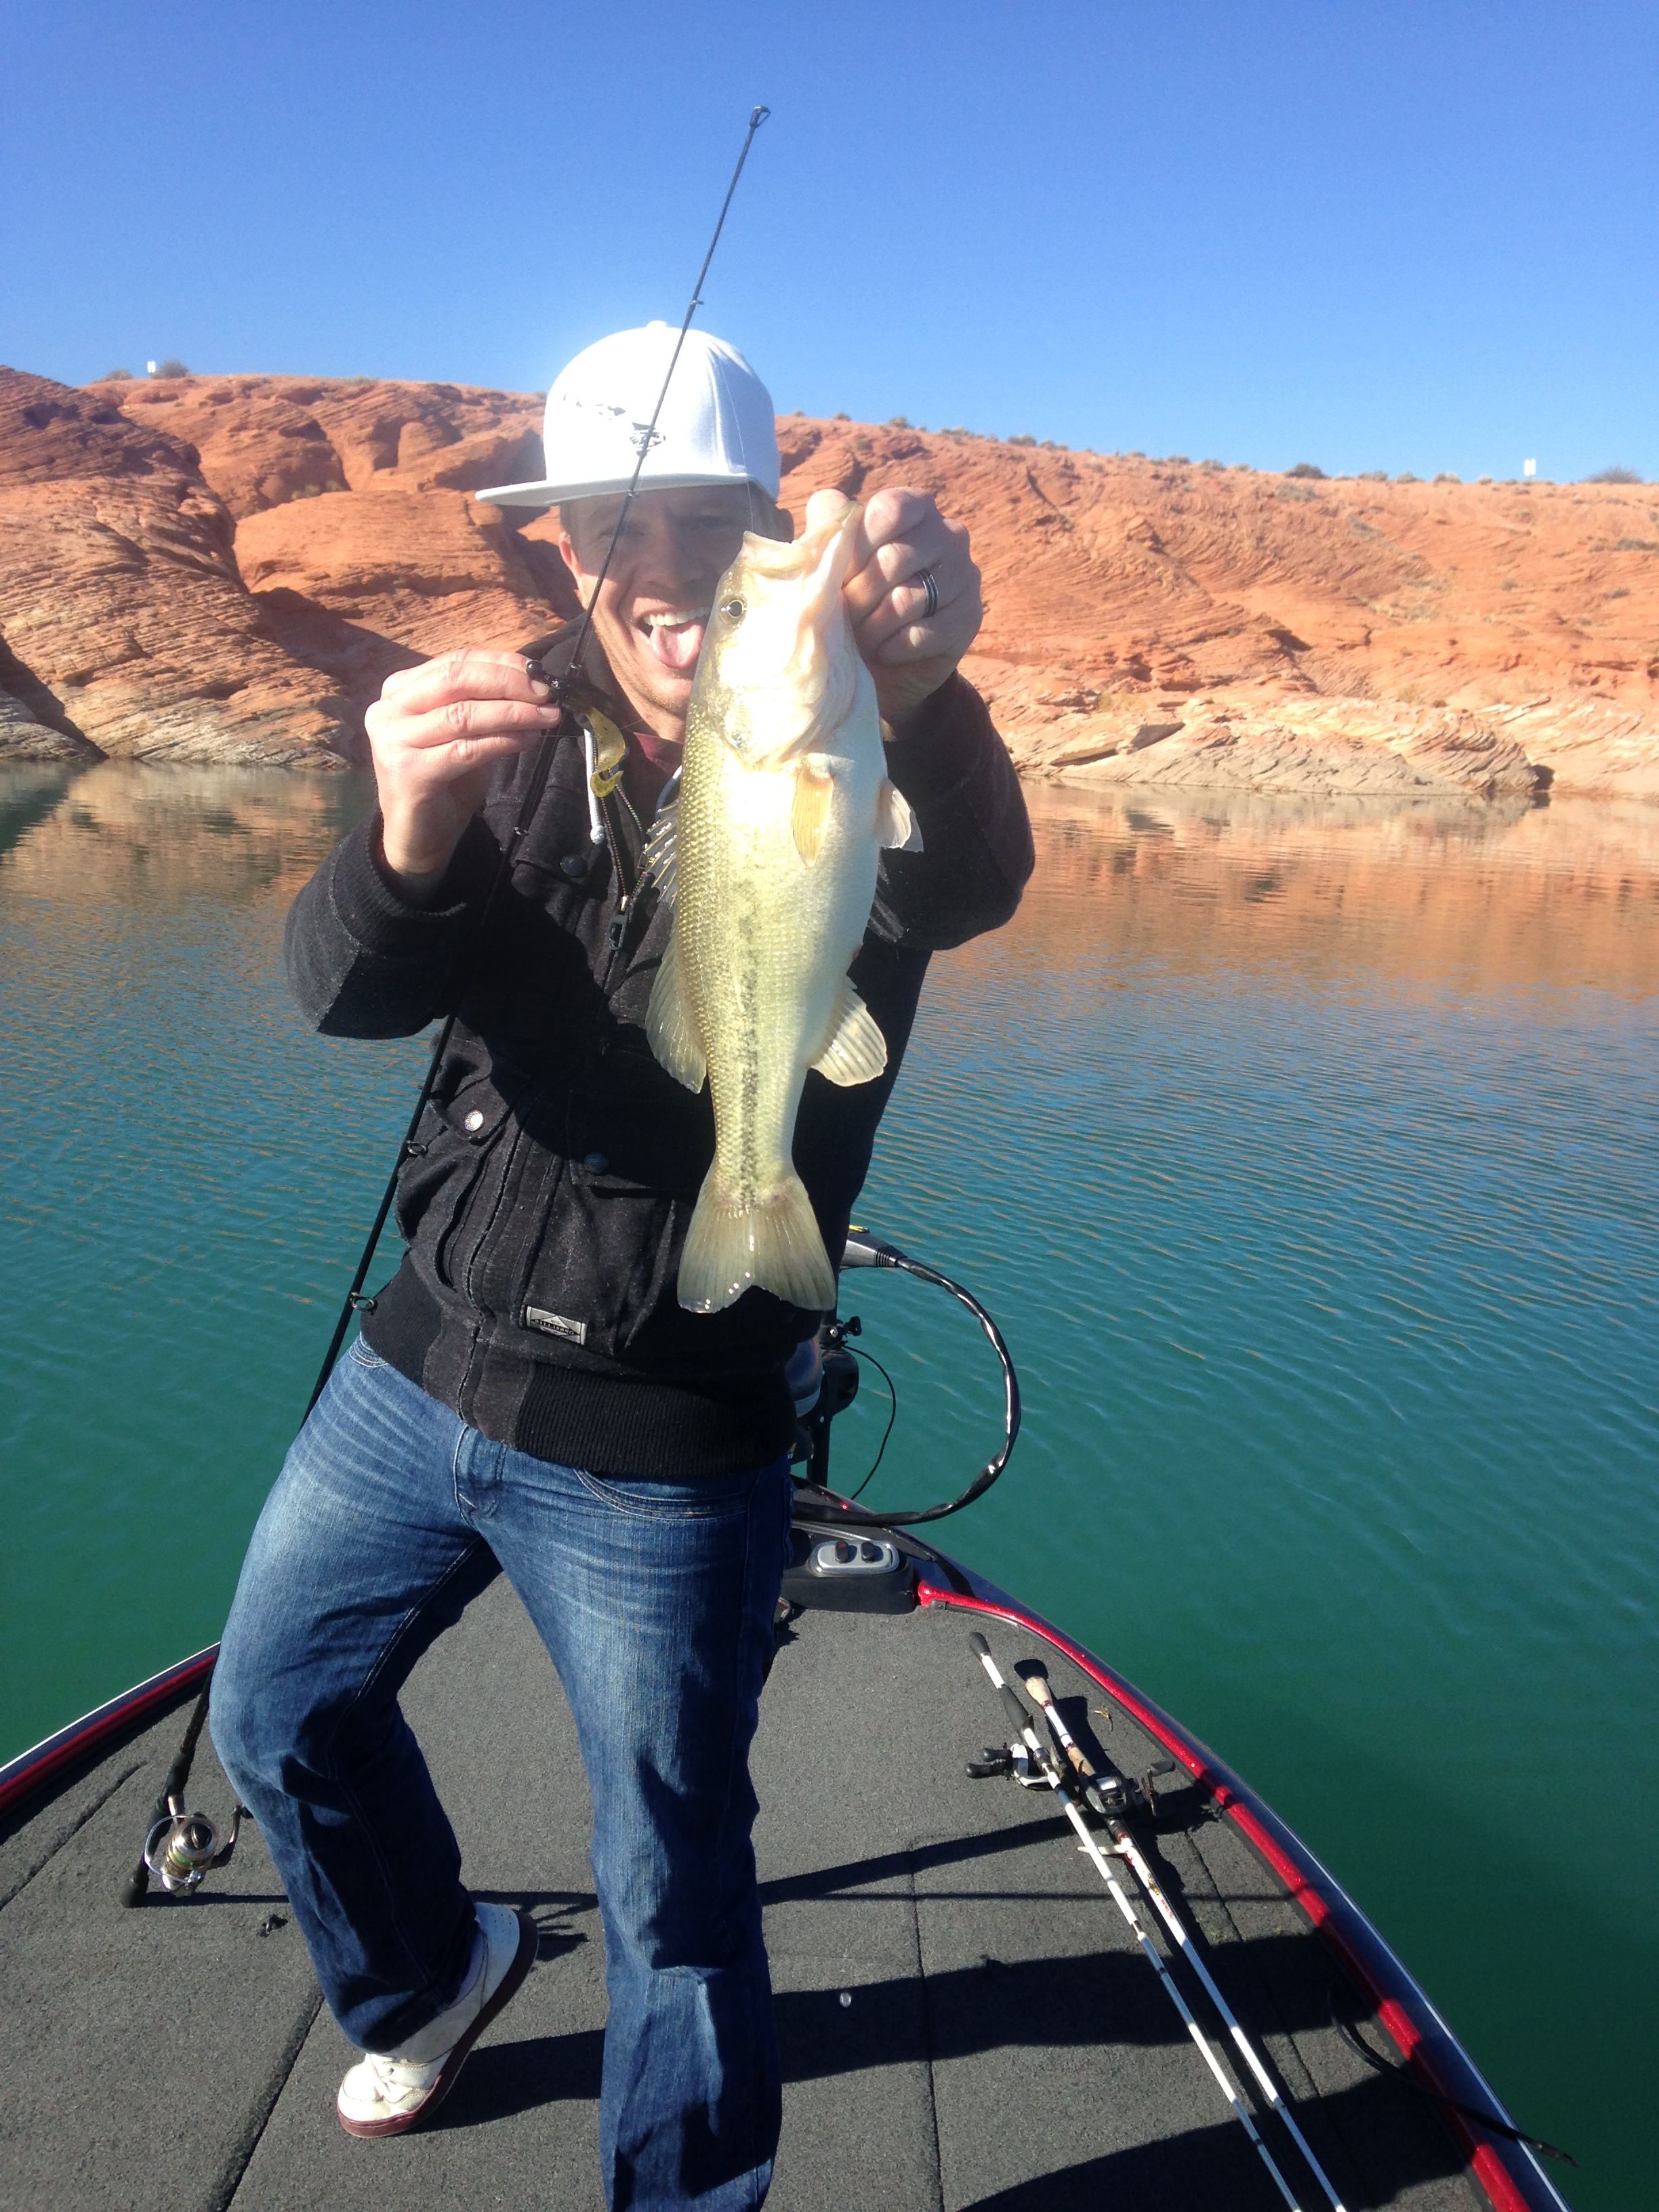 Sand hollow winter bass fishing kraken bass for Sand hollow fishing report